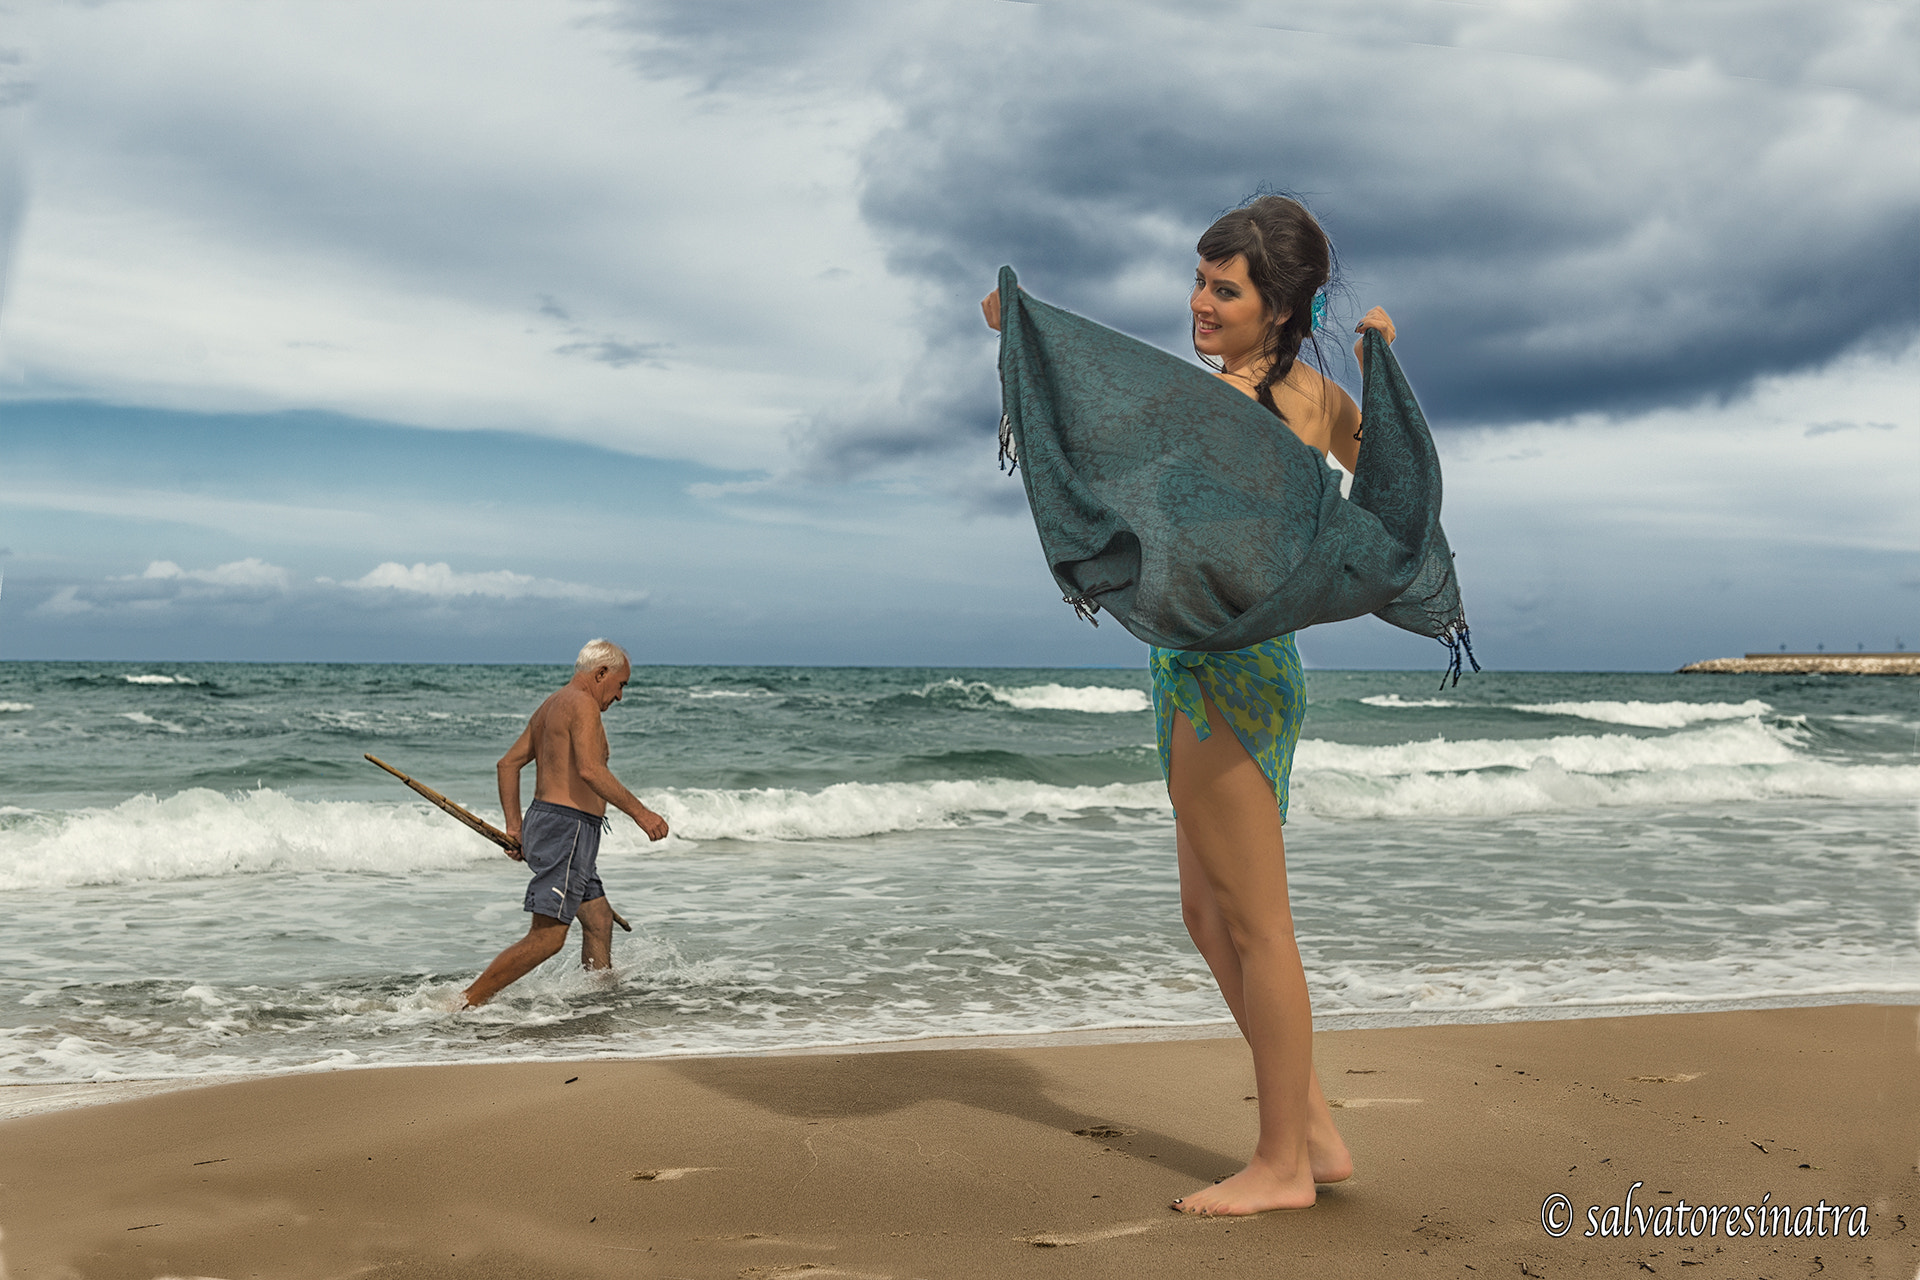 Photograph on the beach by Salvatore Sinatra on 500px